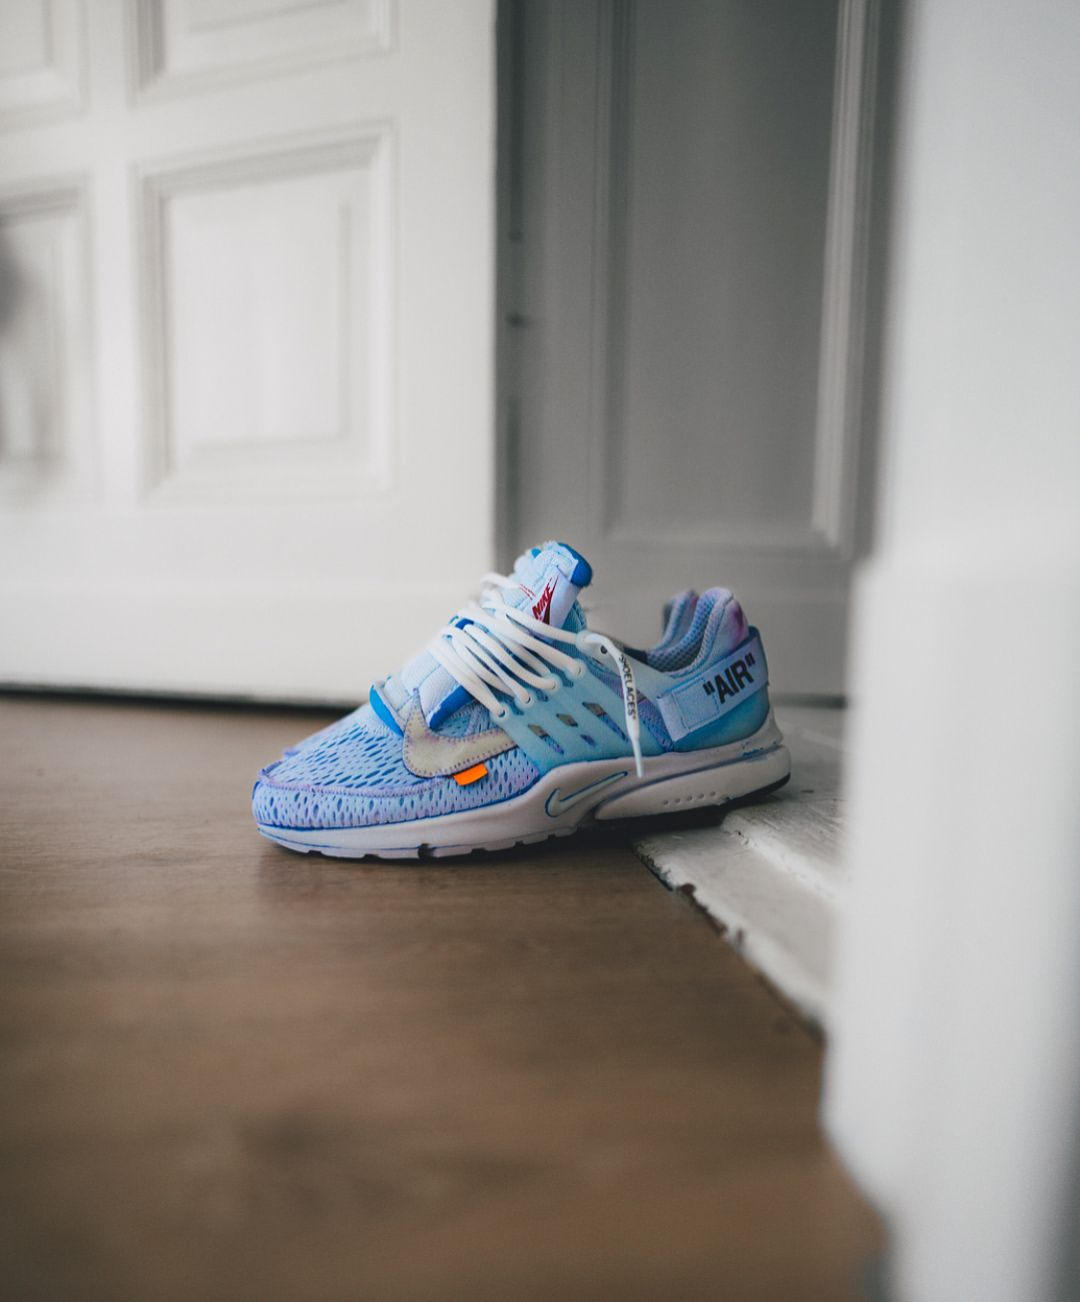 30e30d18f Dyed OFF-WHITE X Nike Air Presto | Street & Footwear | Sneakers ...